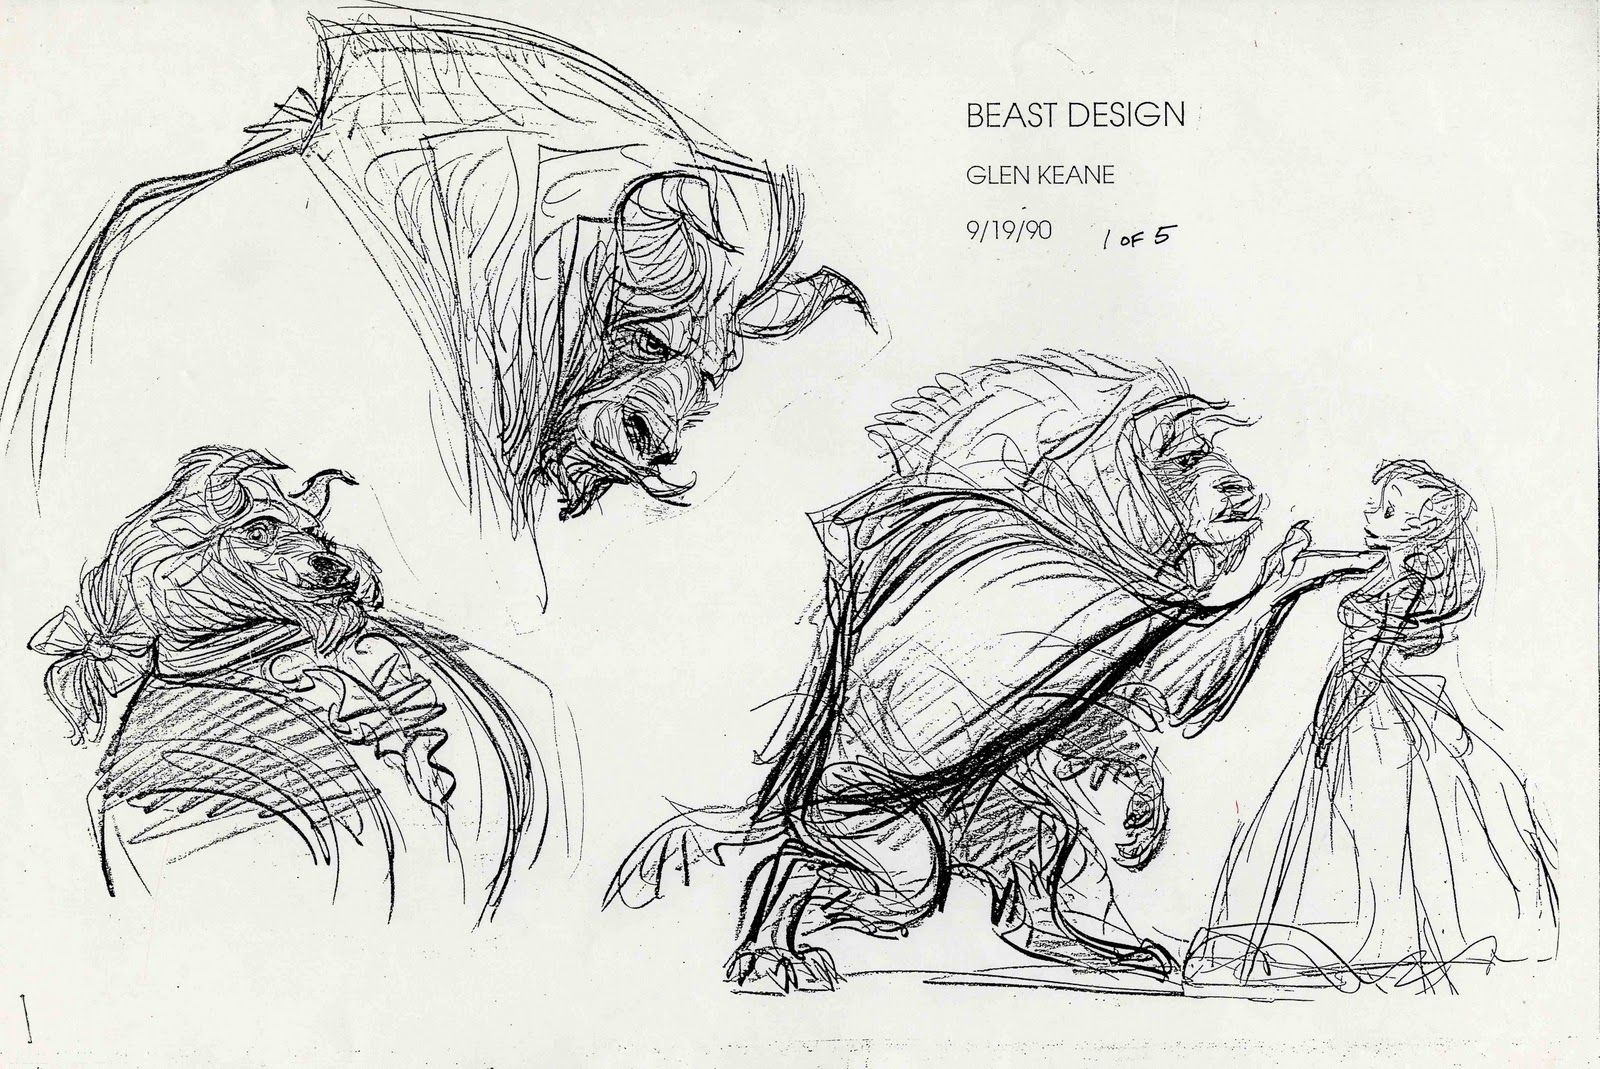 Beauty and the Beast - Beast design by Glen Keane